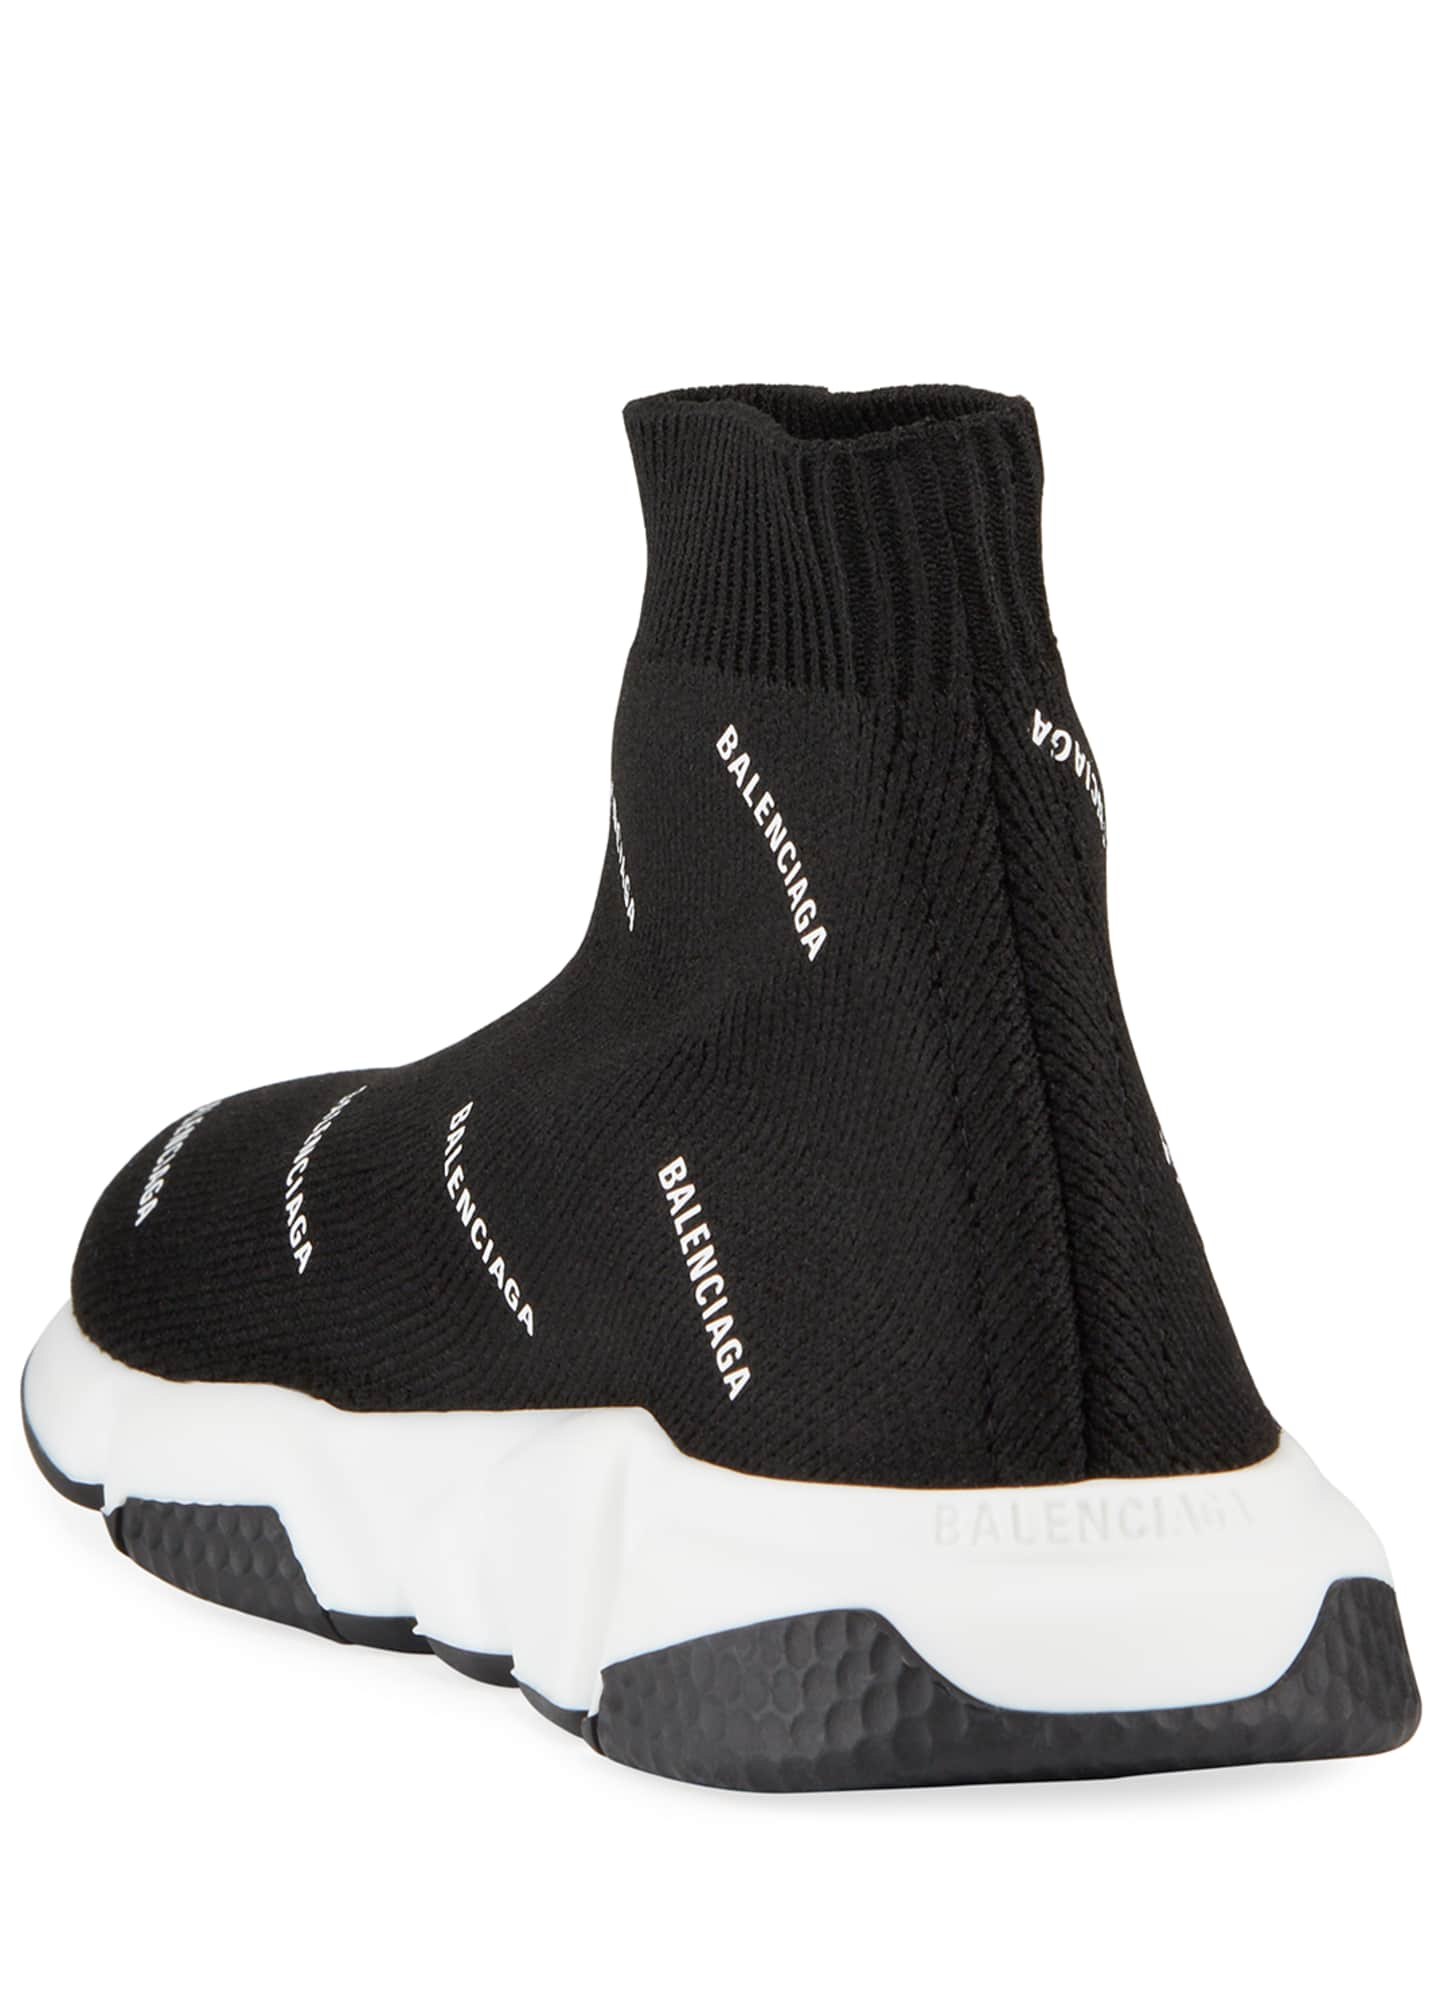 Image 4 of 4: Kids' Tall Speed Knit Sock Sneakers, Toddler/Kids